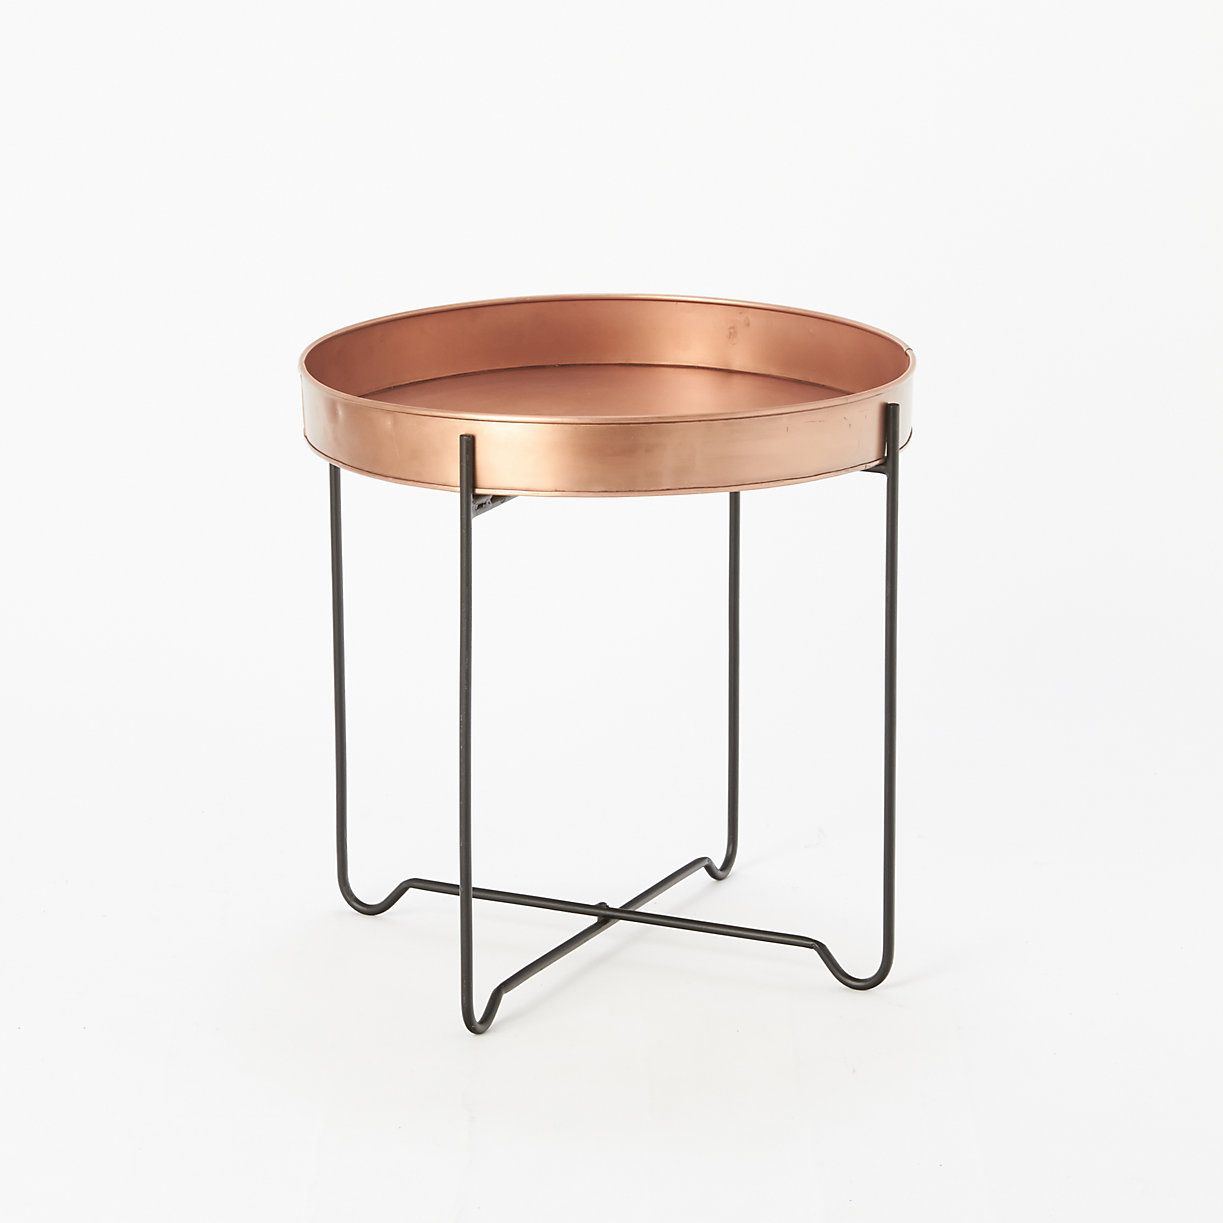 A Sleek, Iron Frame Pairs With Our Classic Copper Tray From Habit + Form To  Create This Practical Plant Stand Or End Table. Can Also Be Used With The  Dark ...